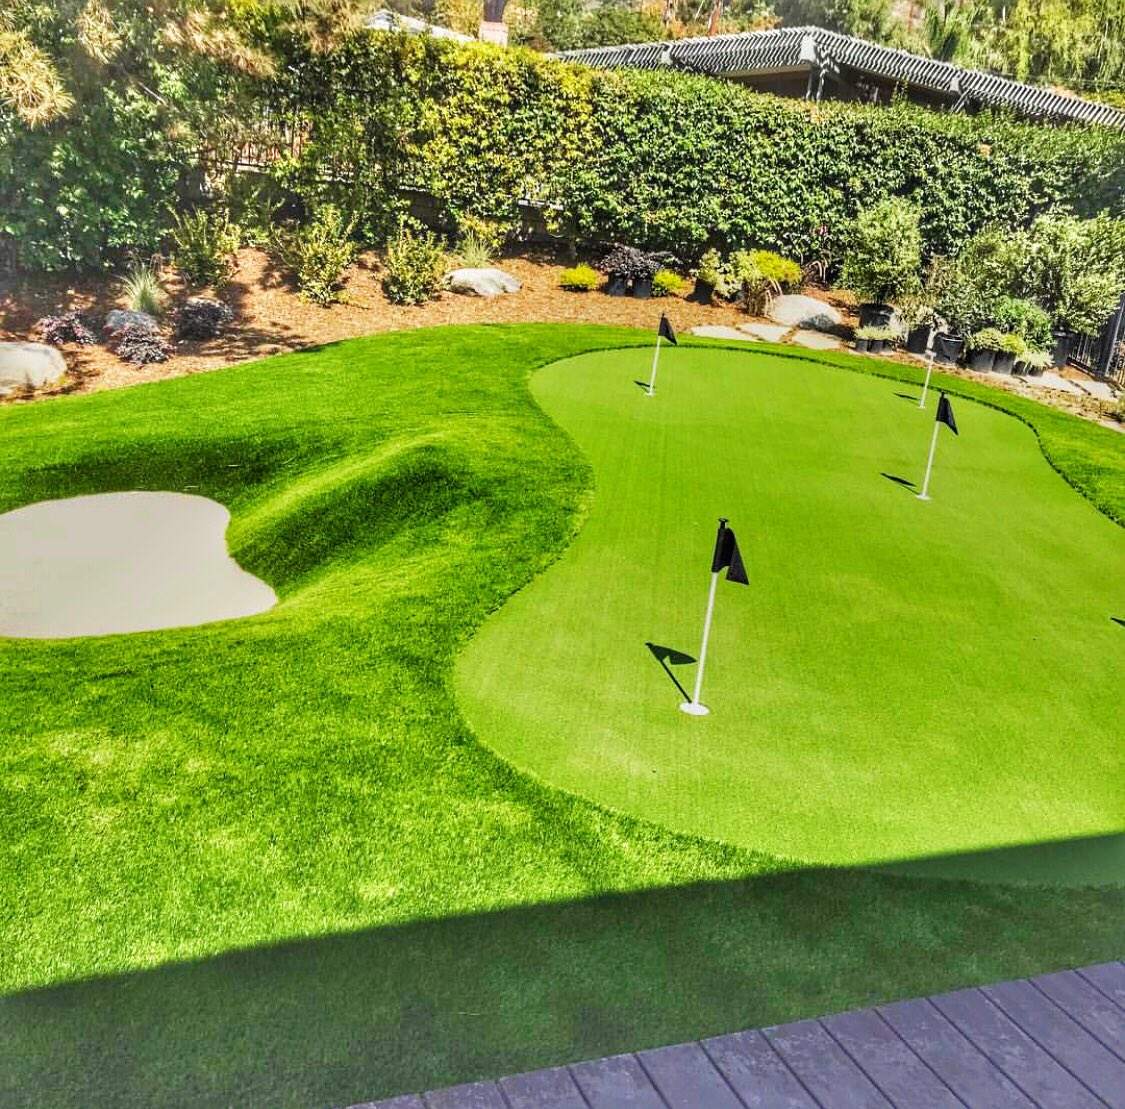 RT  RT  RT @Booneactionturf: BAT Synthetic Turf Putting Green and Sand Bunker Install Arcadia Ca. #synturf #syntheticturf #artificialturf #art…